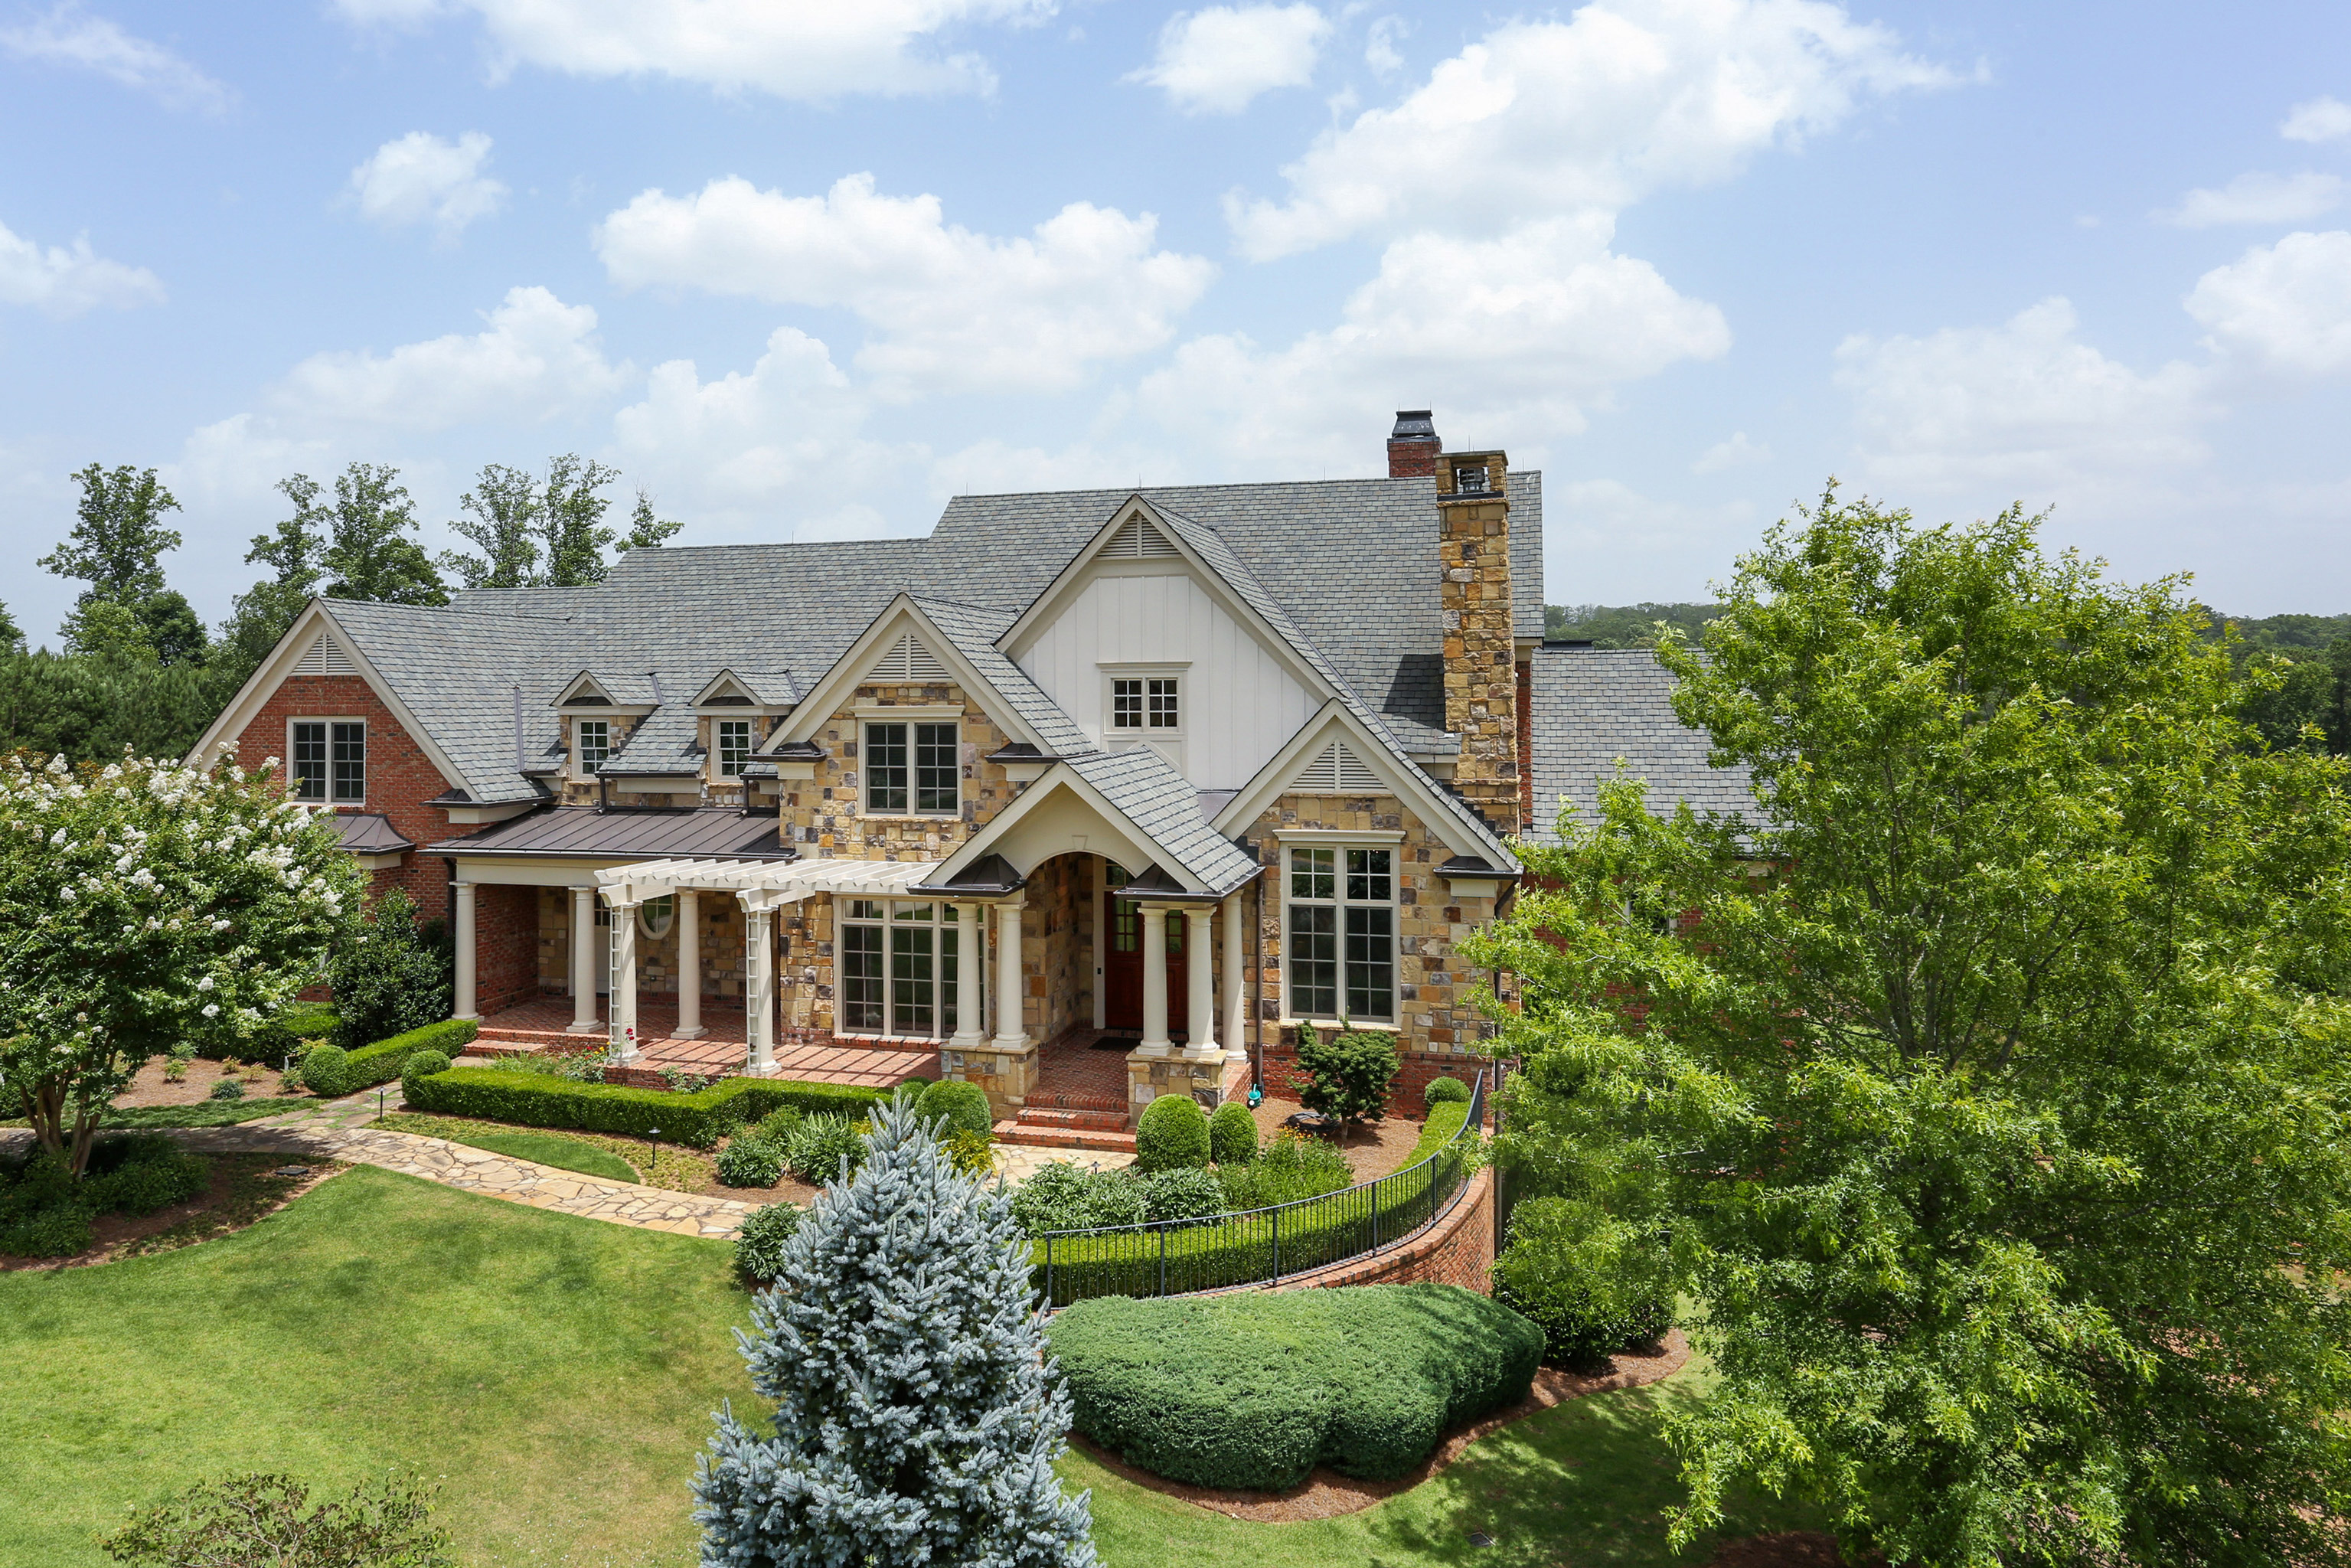 Villa per Vendita alle ore Casual Elegance in Blue Valley 112 Liberty Grove Pass Alpharetta, Georgia, 30004 Stati Uniti